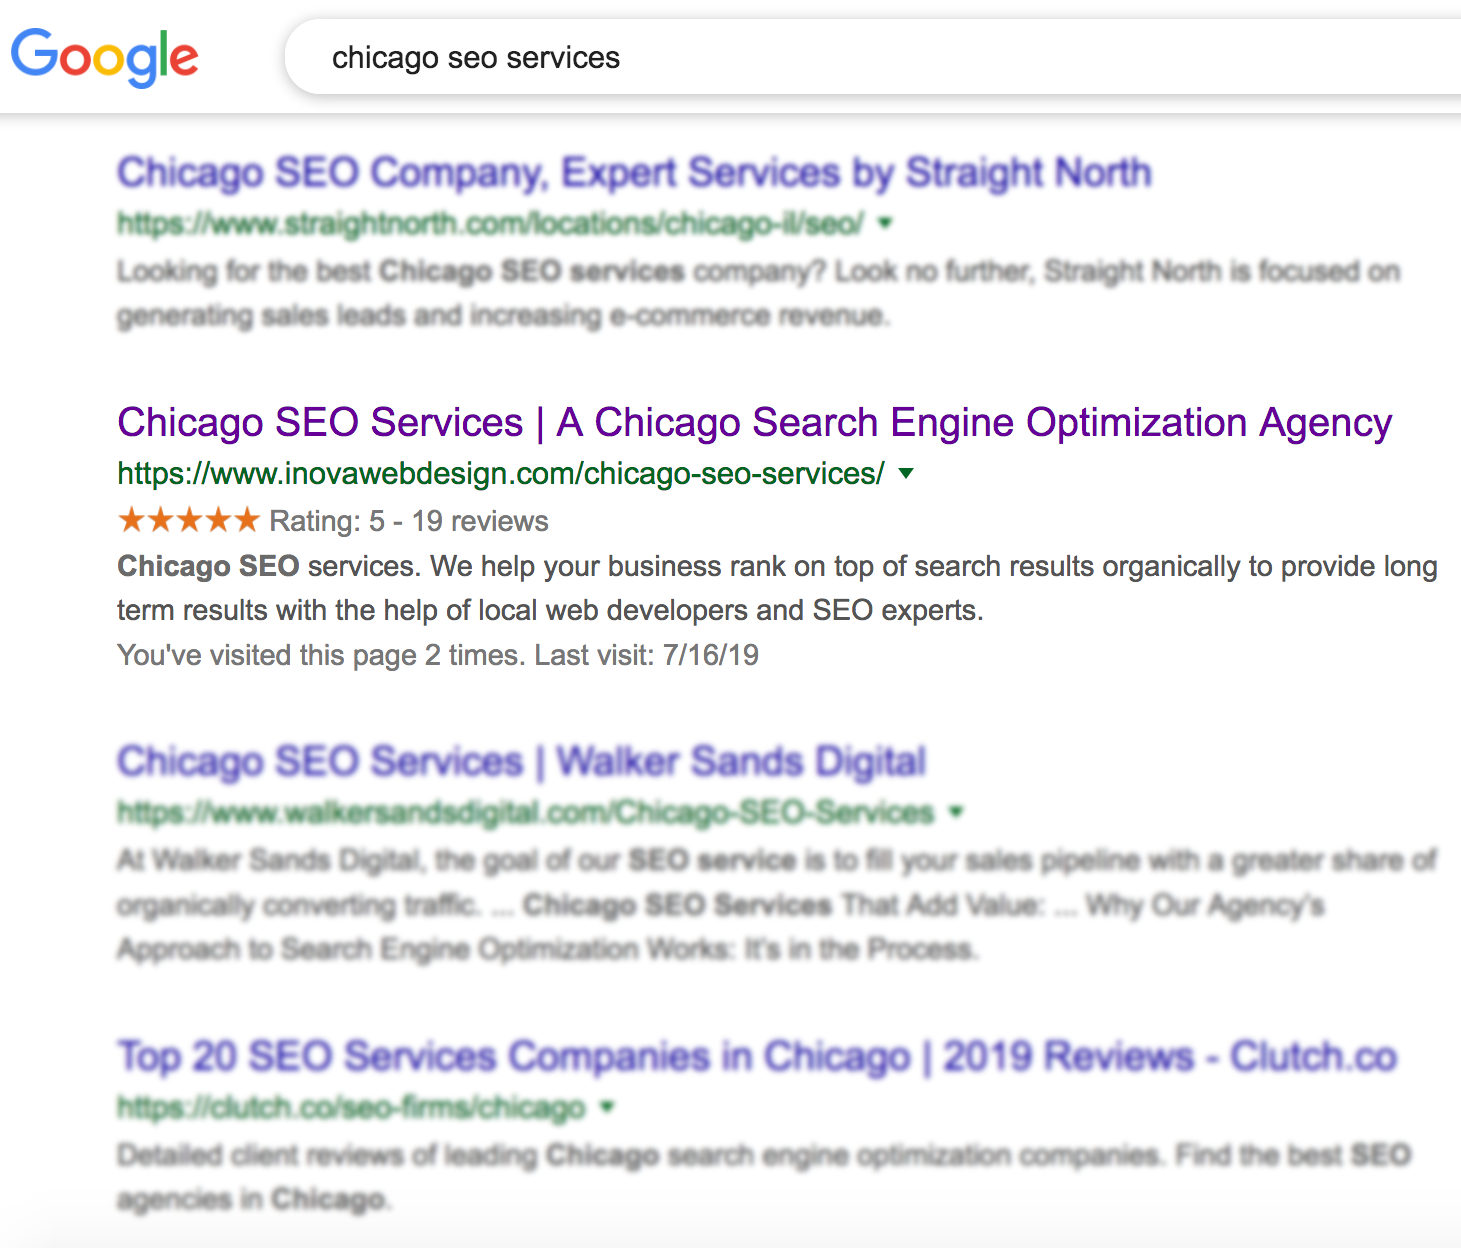 Google search results for SEO services